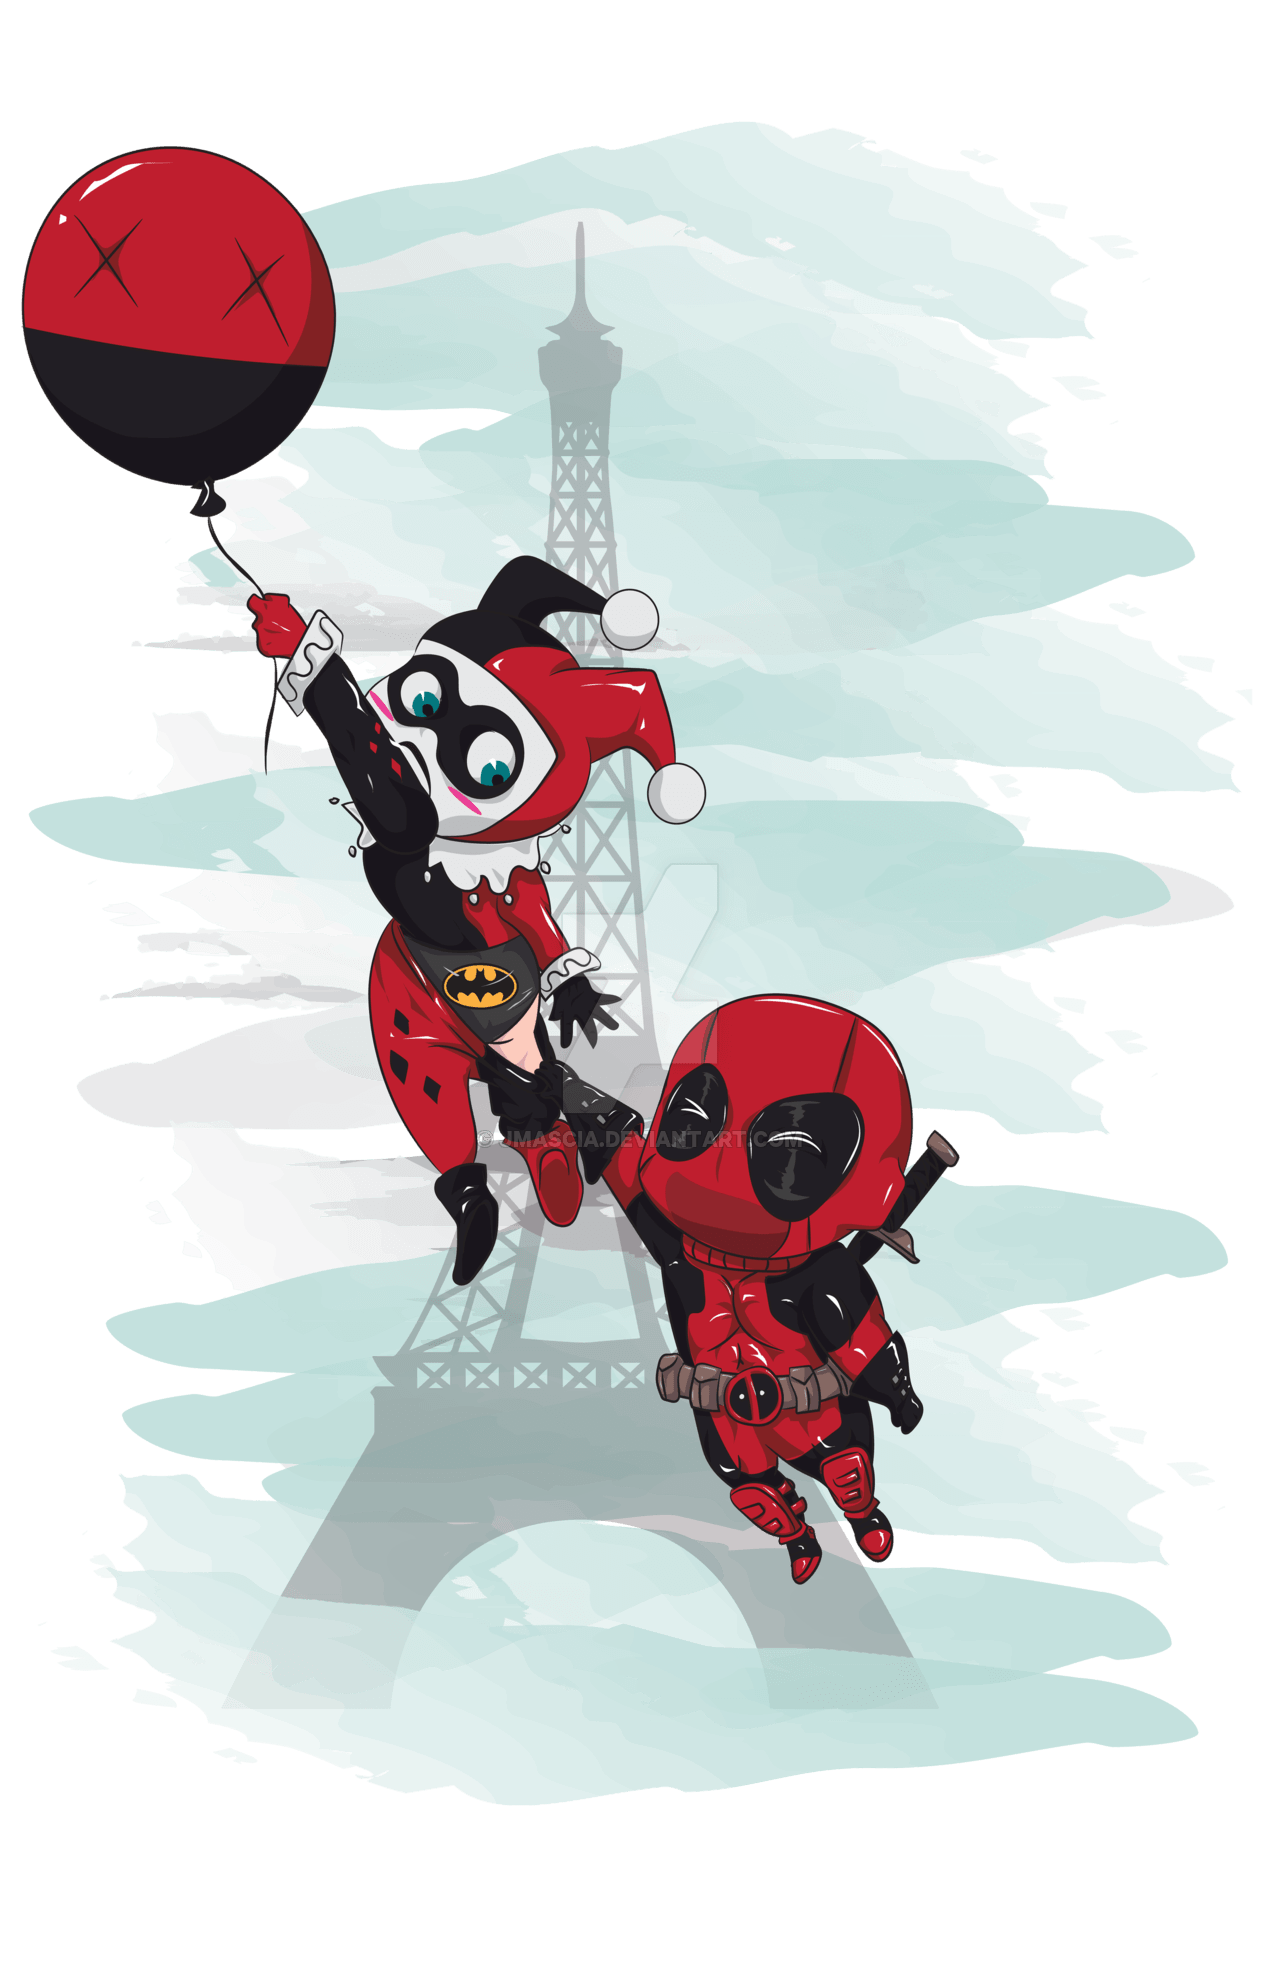 Deadpool And Harley Quinn 4k Wallpapers Top Free Deadpool And Harley Quinn 4k Backgrounds Wallpaperaccess